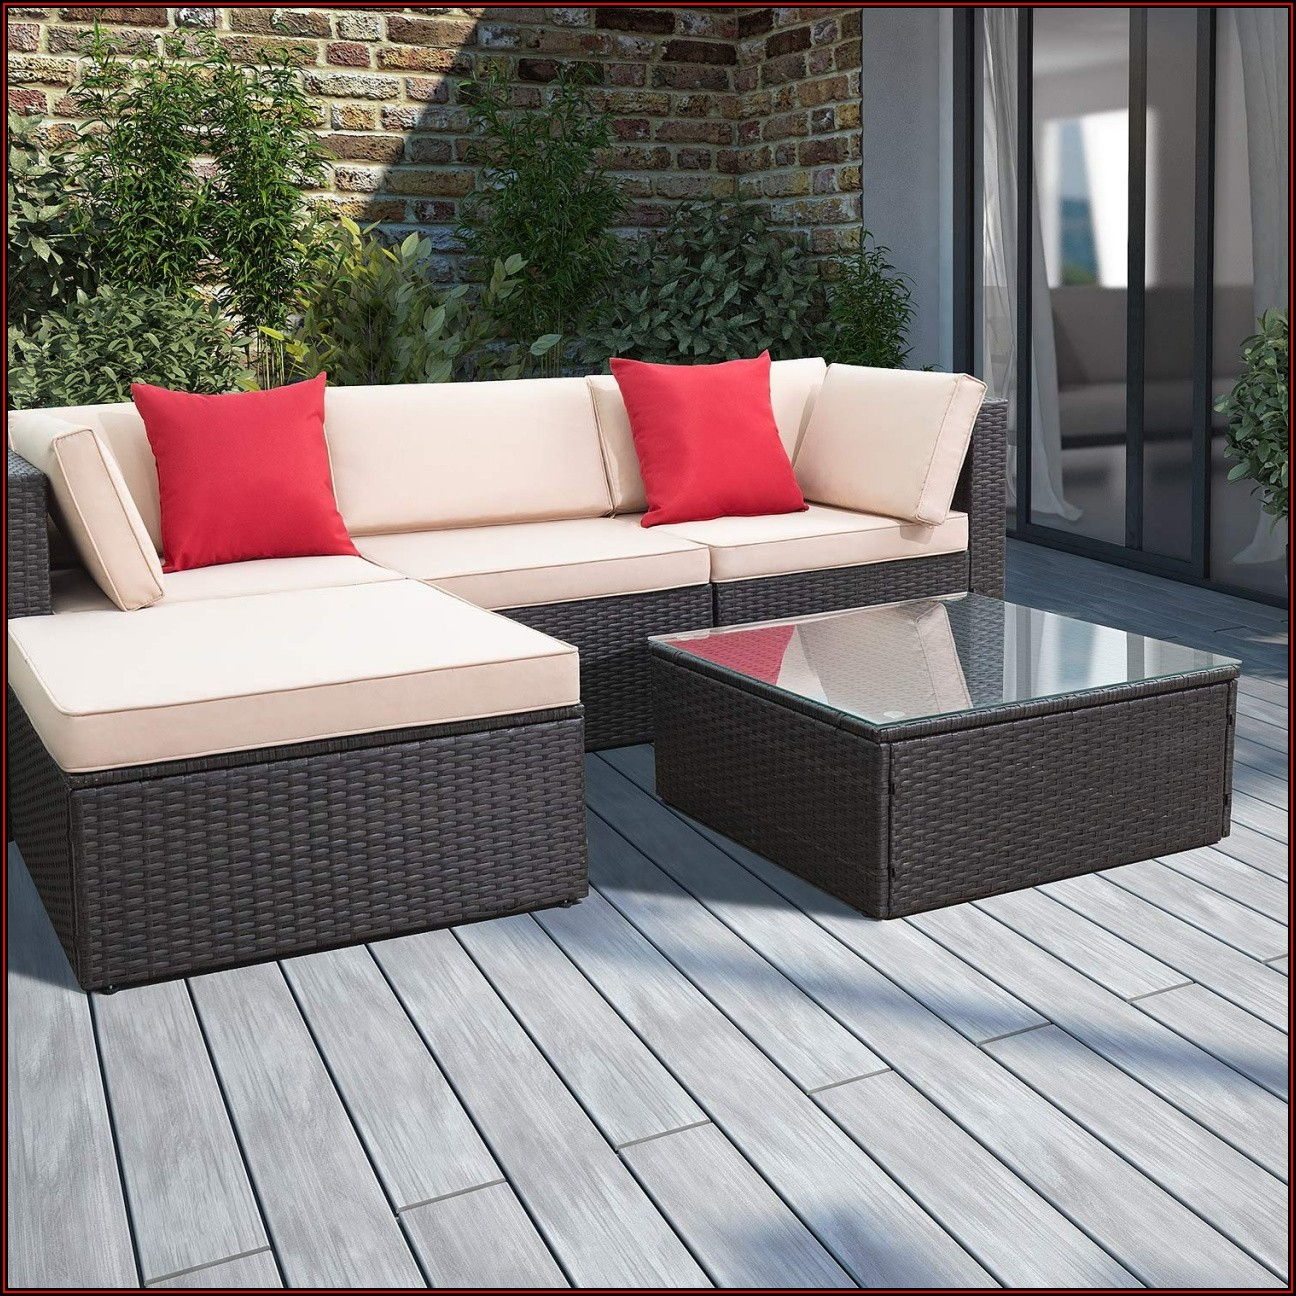 Patio Conversation Sets Under 300